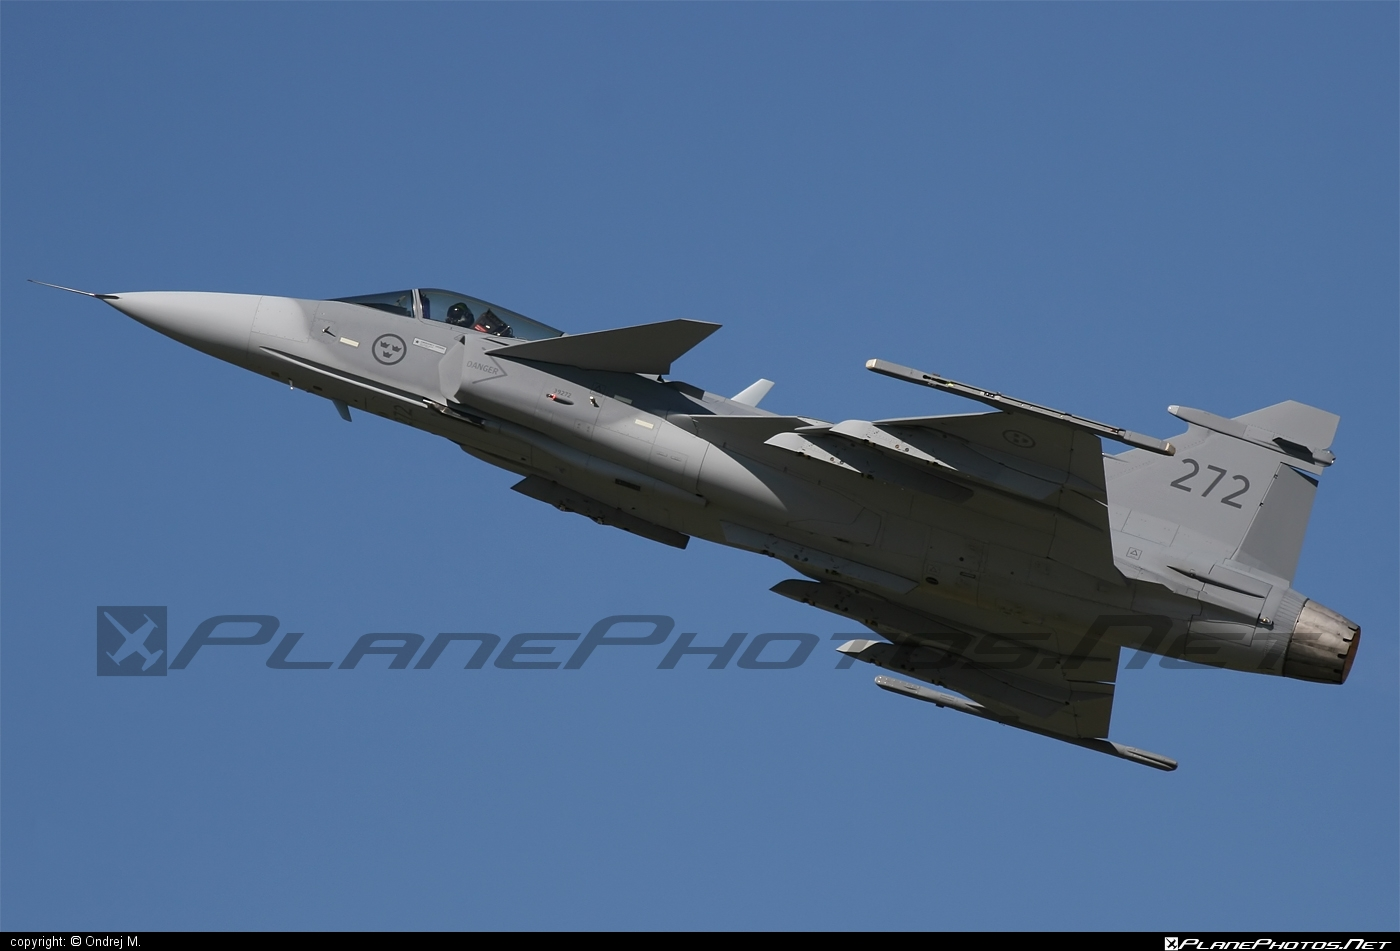 Saab JAS 39C Gripen - 39272 operated by Flygvapnet (Swedish Air Force) #flygvapnet #gripen #jas39 #jas39c #jas39gripen #saab #swedishairforce